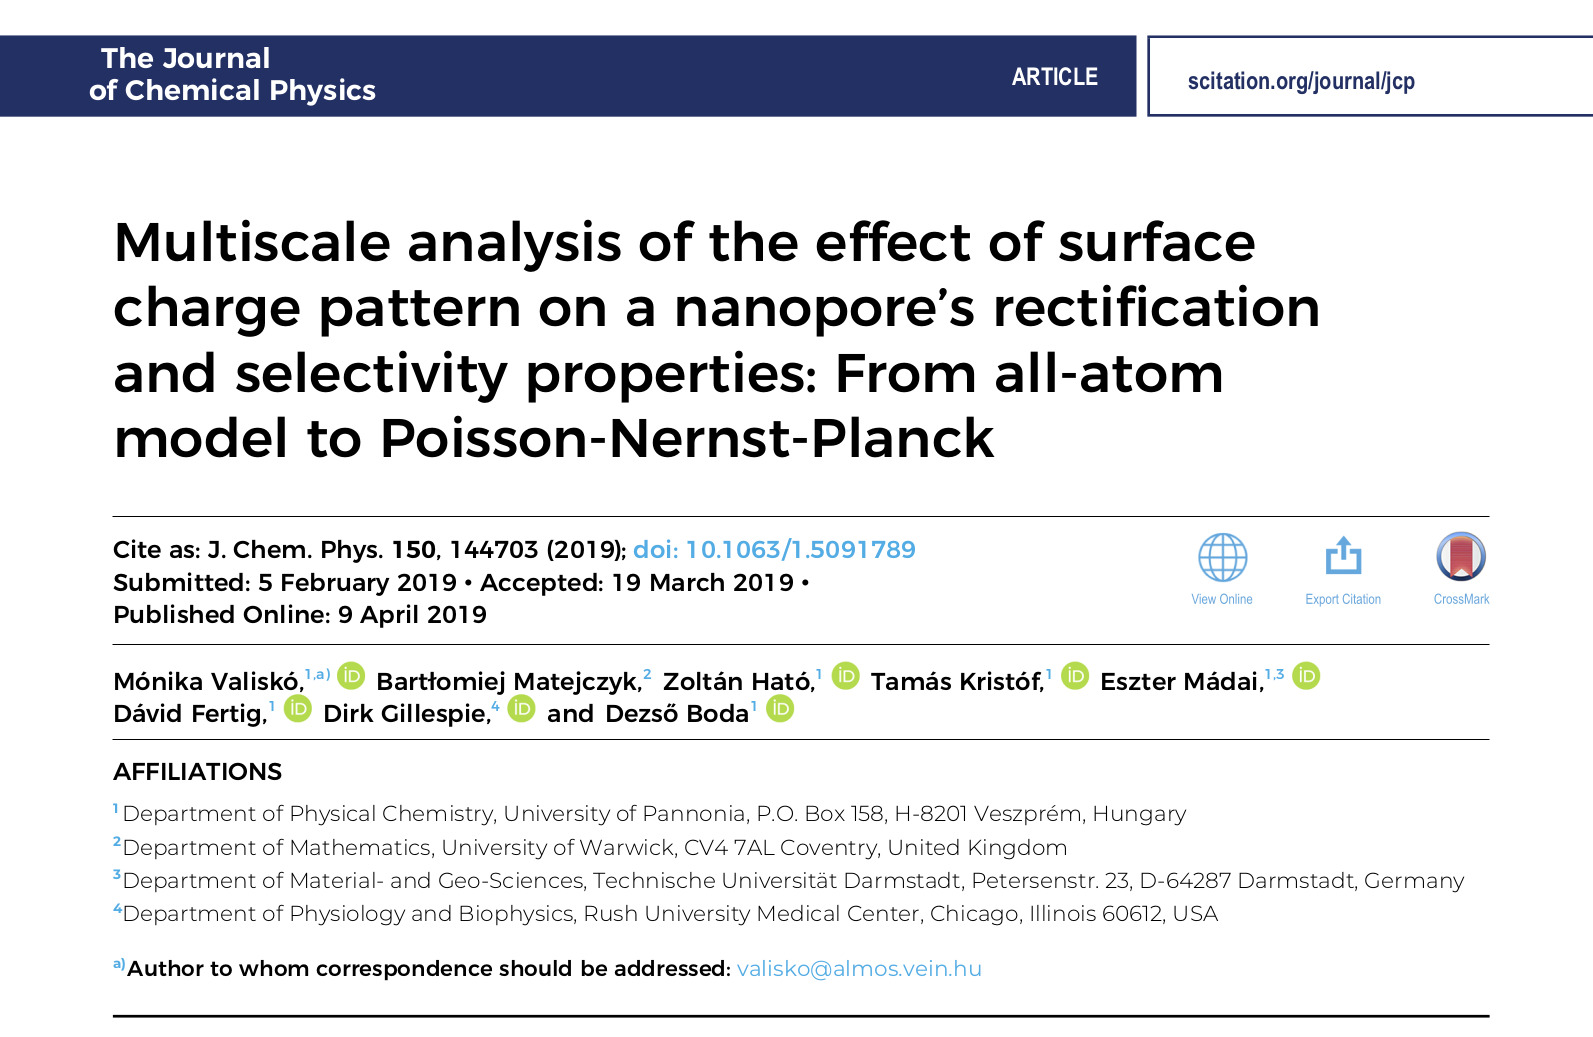 Multiscale analysis of the effect of surface charge pattern